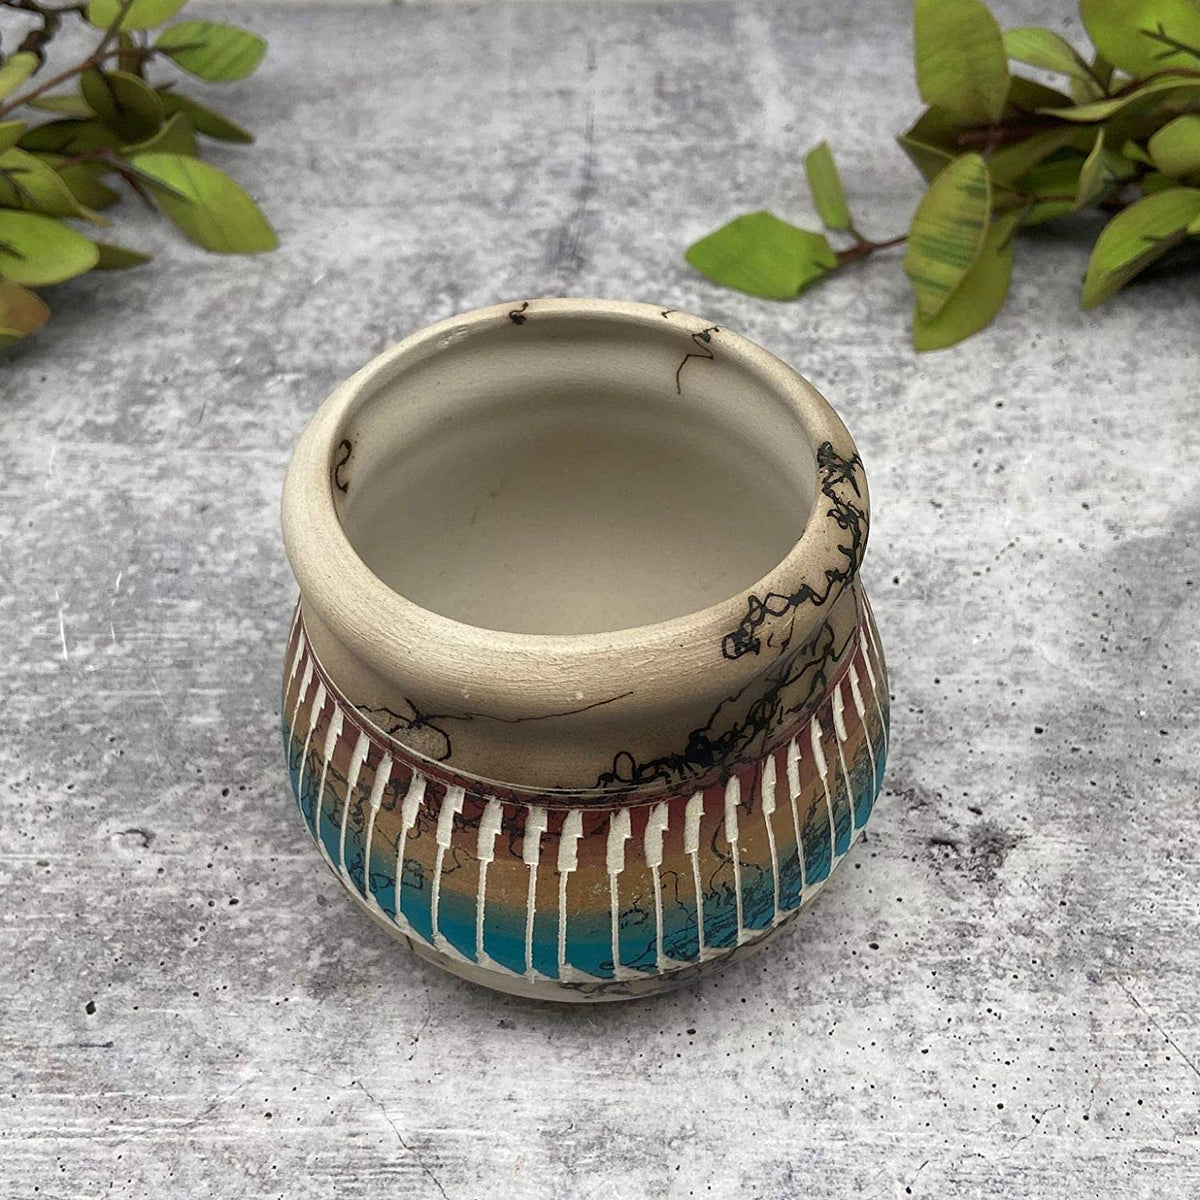 Authentic Native American Pottery, Miniature Traditional Olla Style, Genuine Navajo Tribe USA Handpainted and Etched, Artist Signed, Southwestern Home Decor Collectible